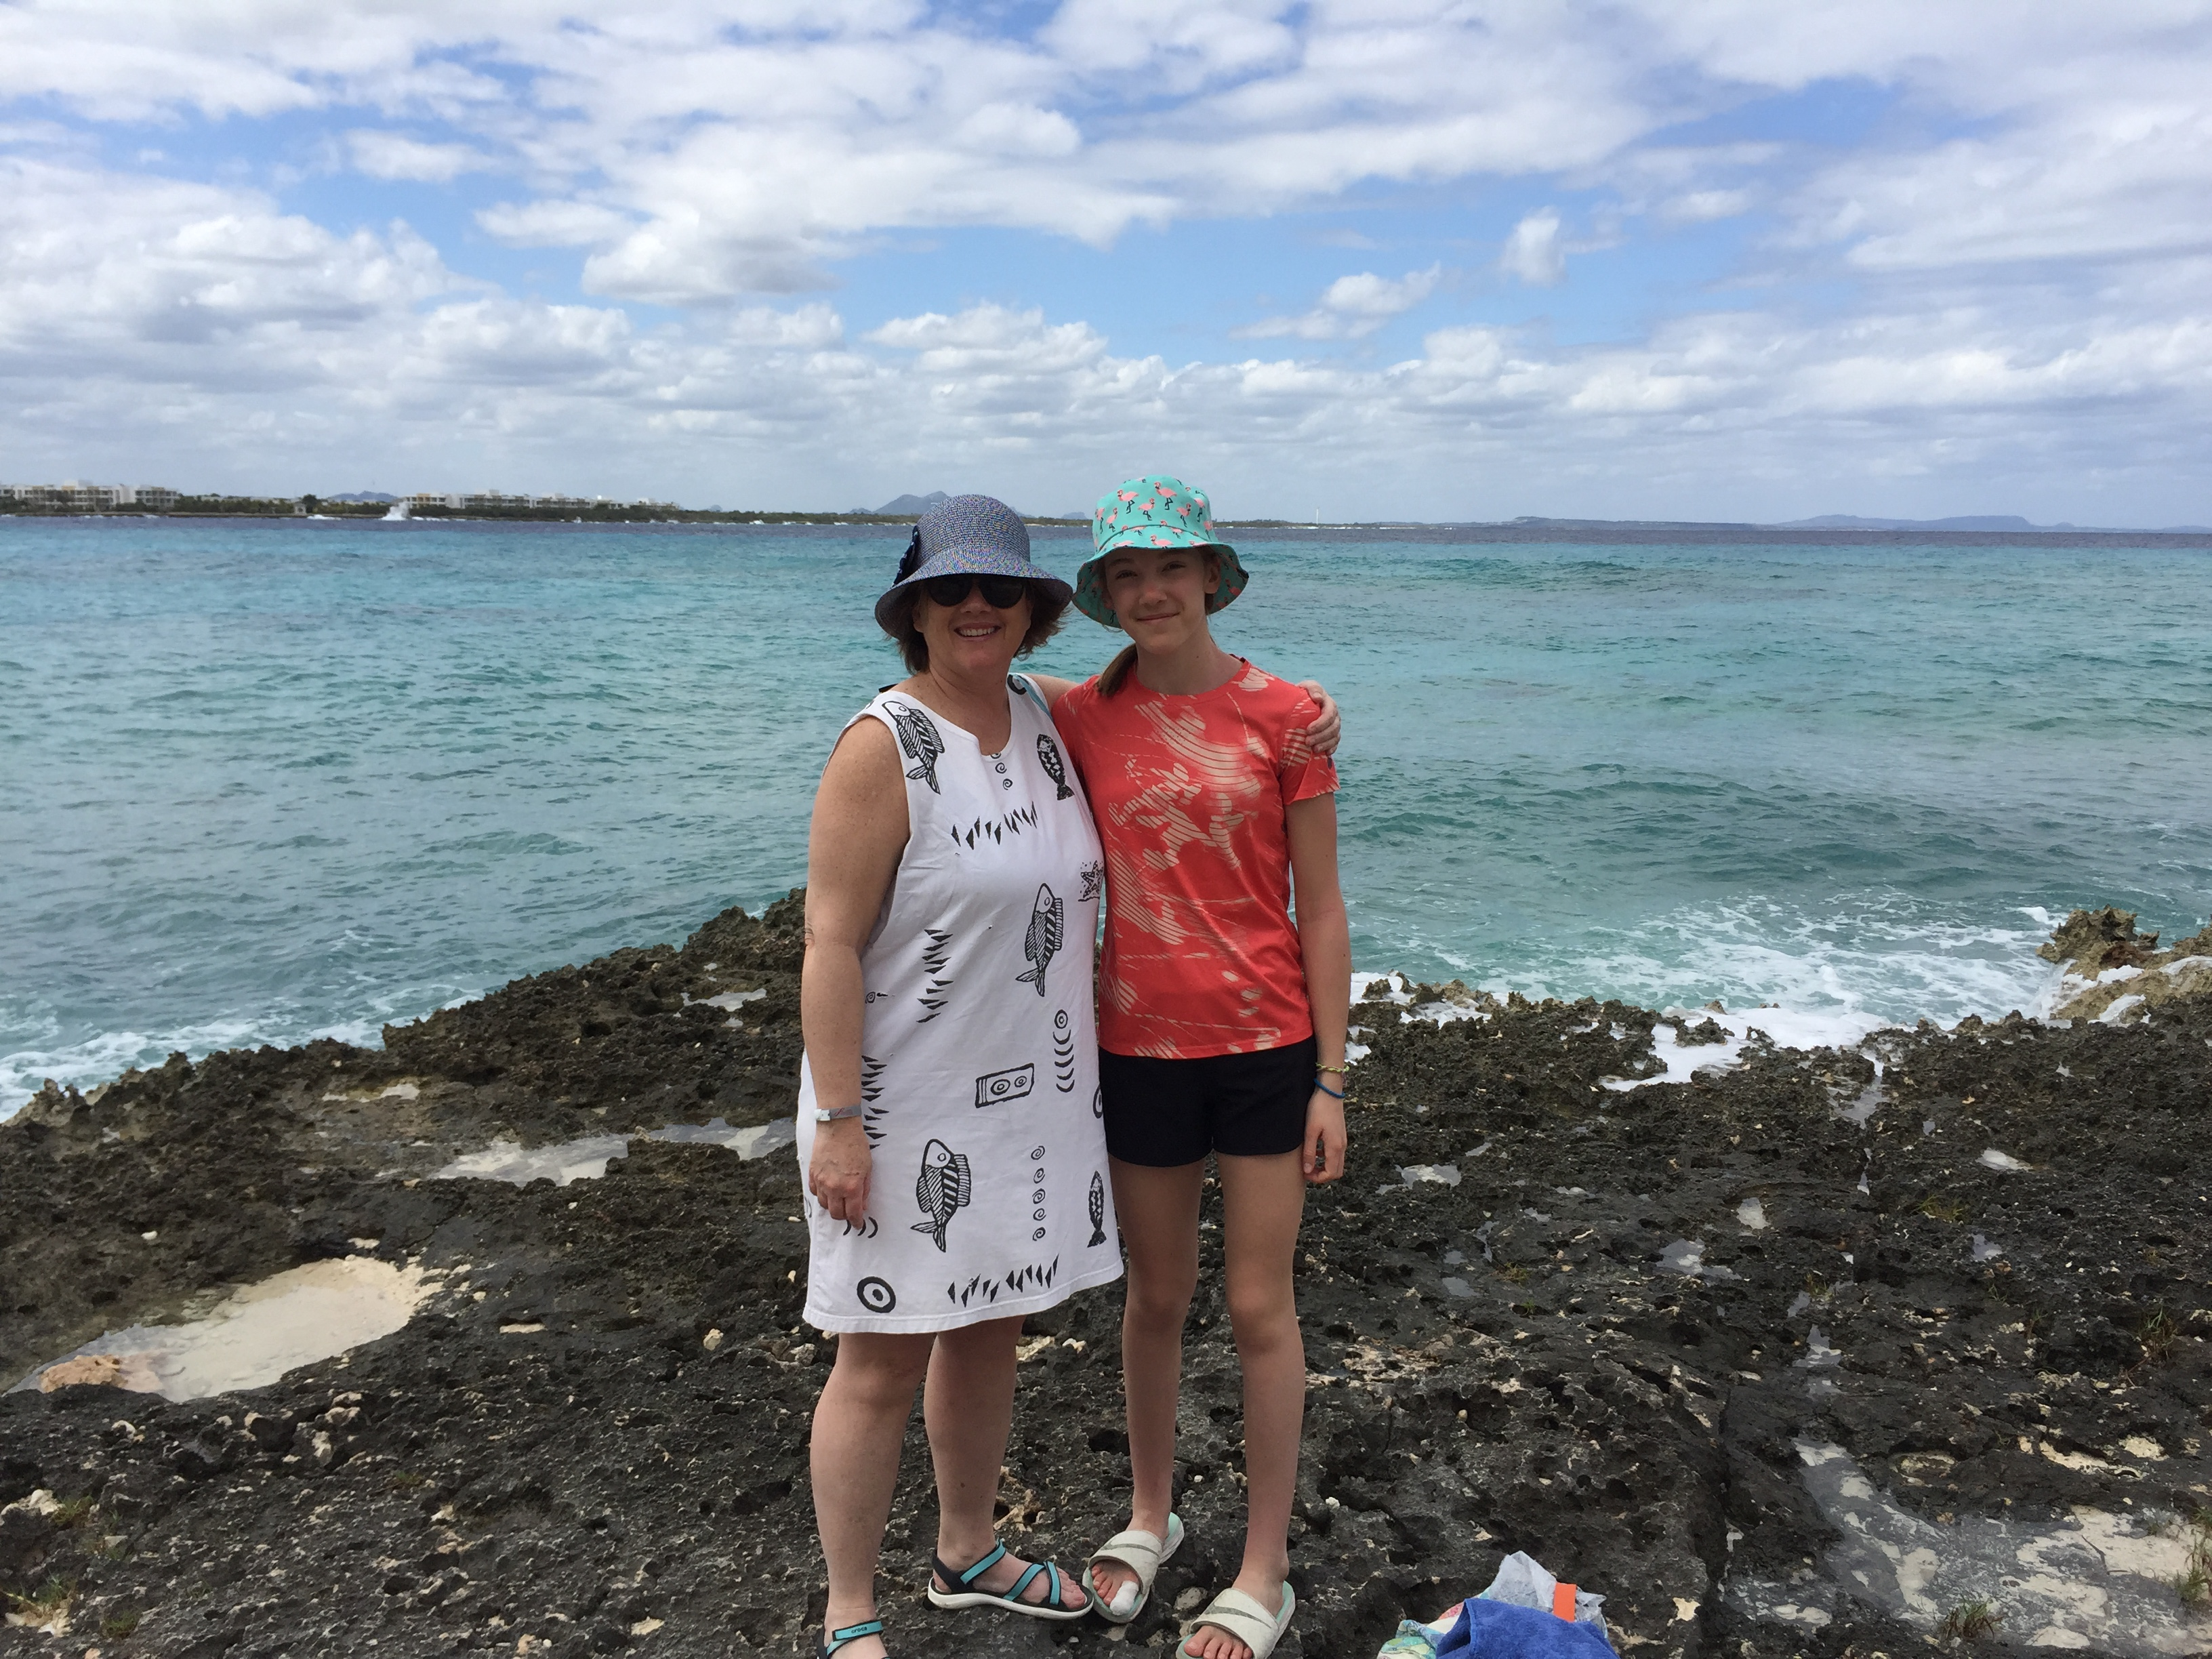 Me and Clare on the rocks